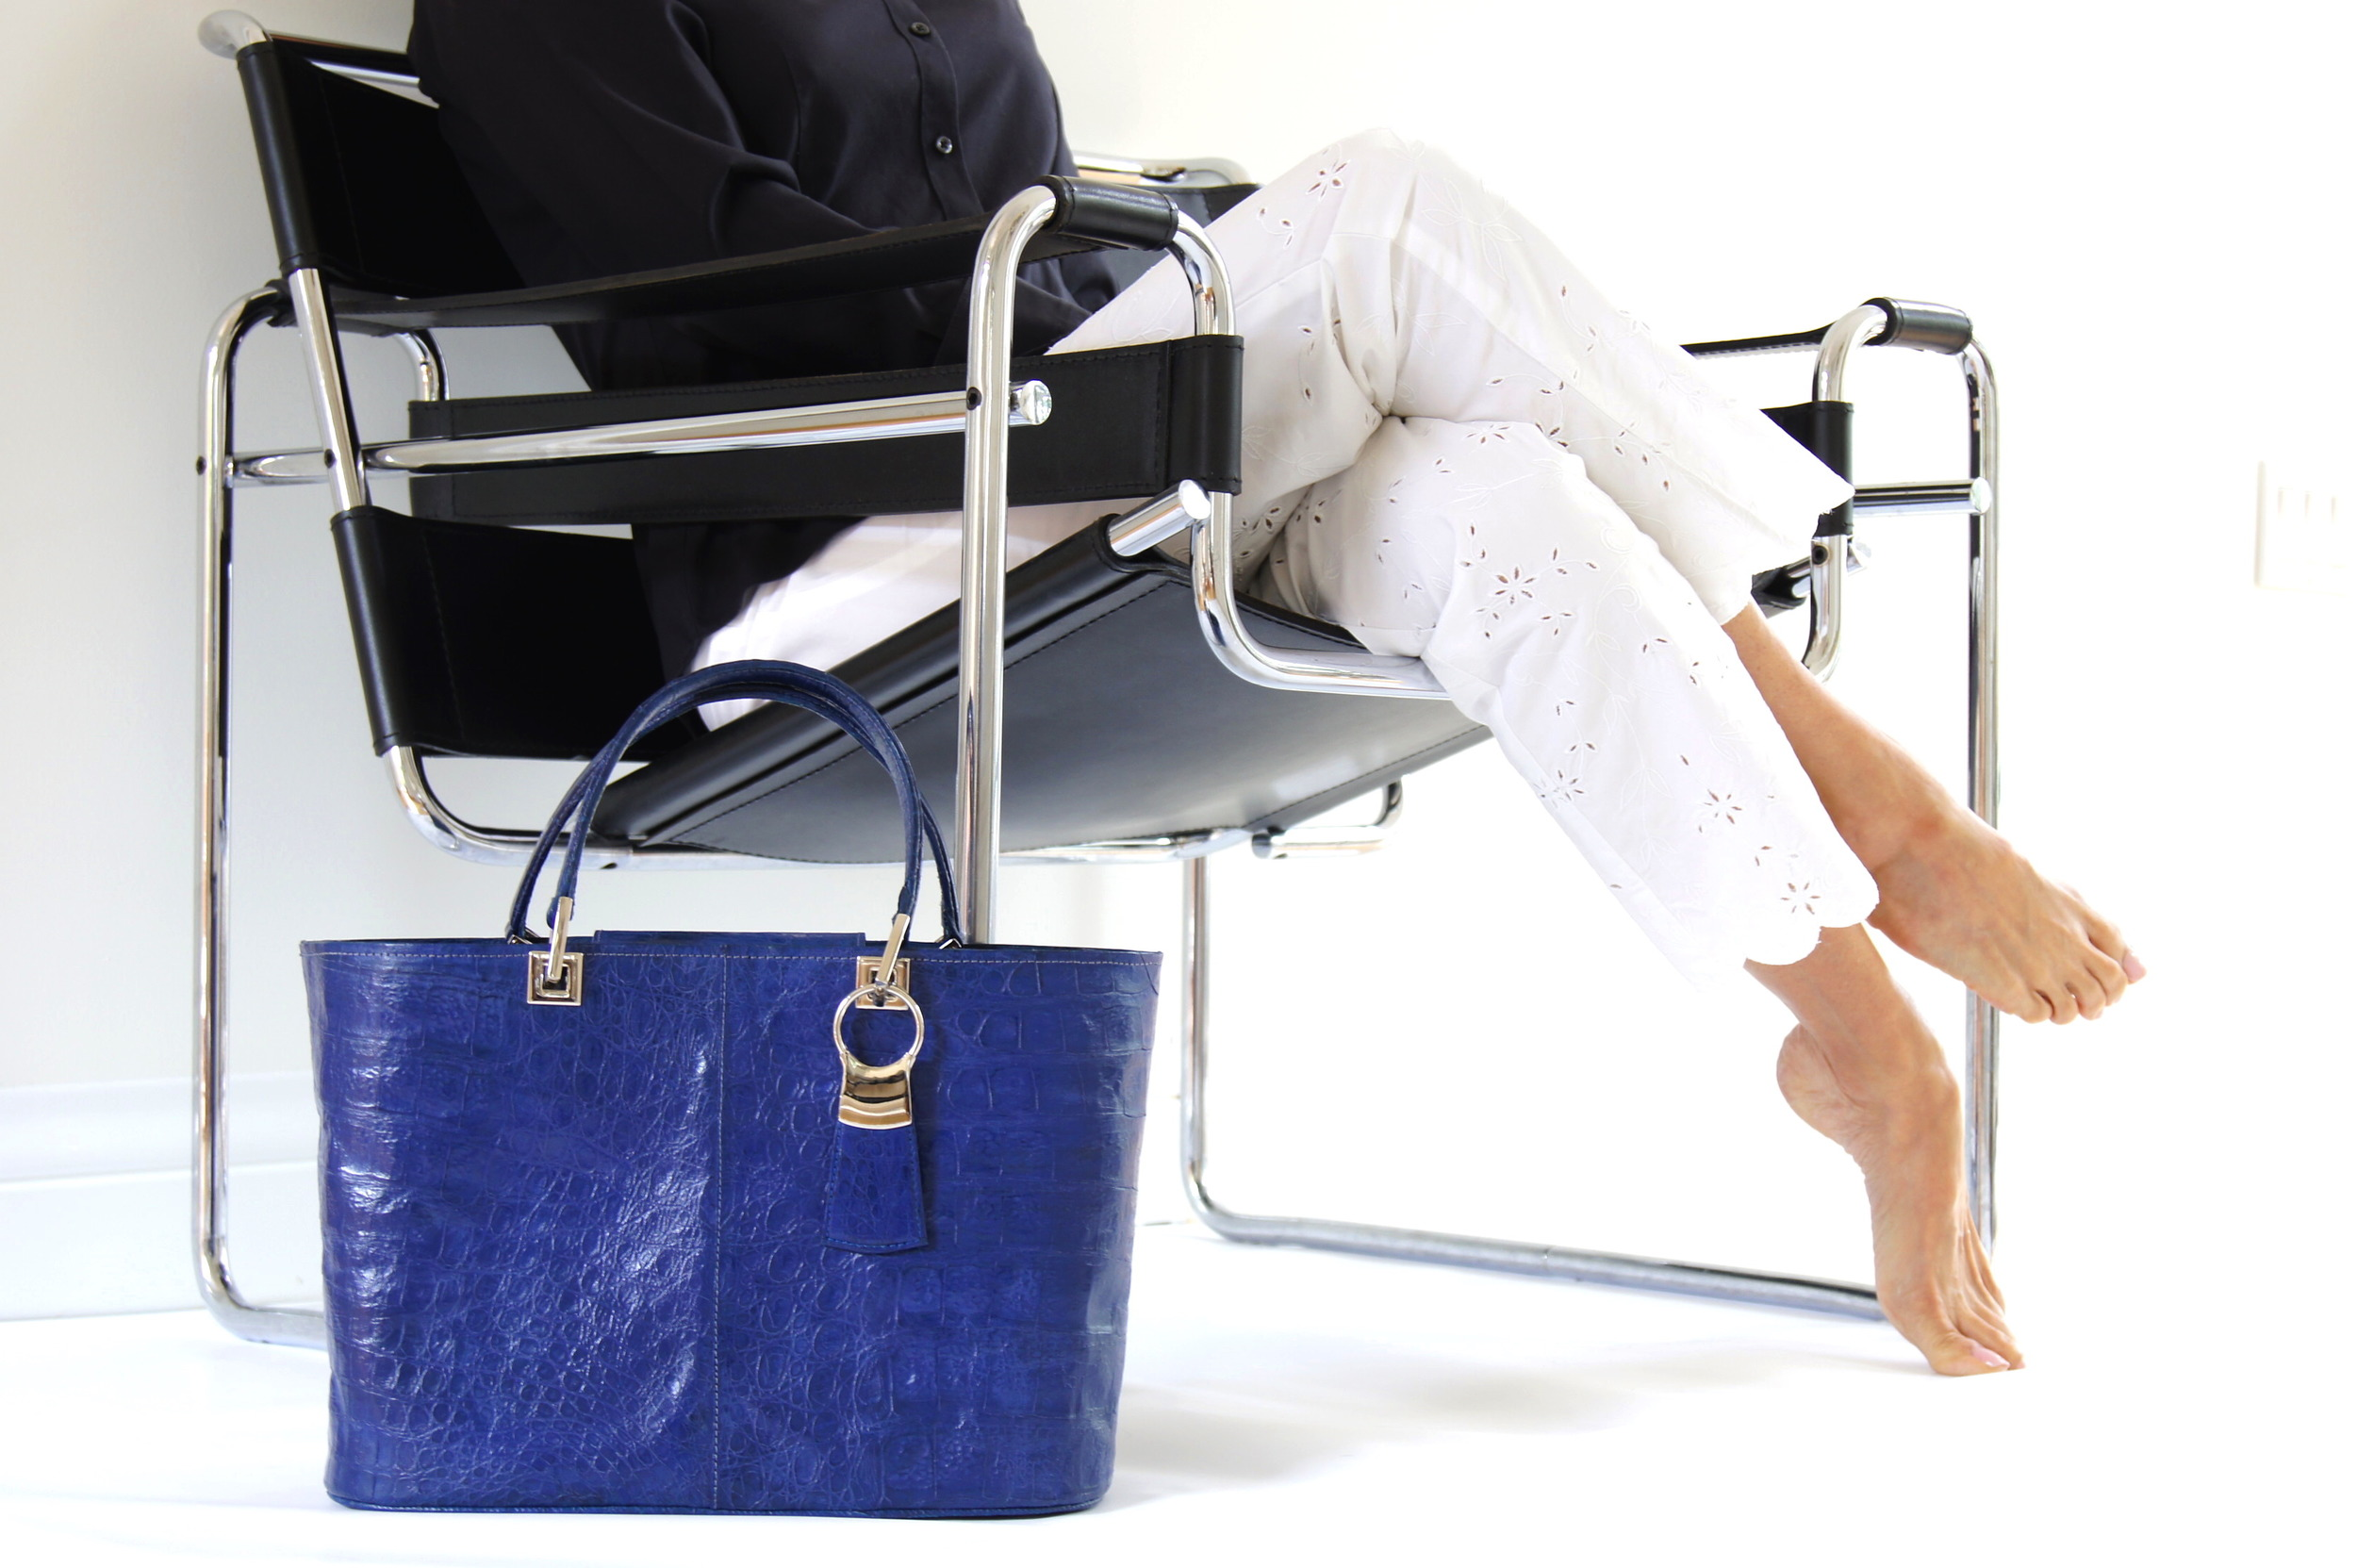 Blk Chair - Blue Tote.JPG